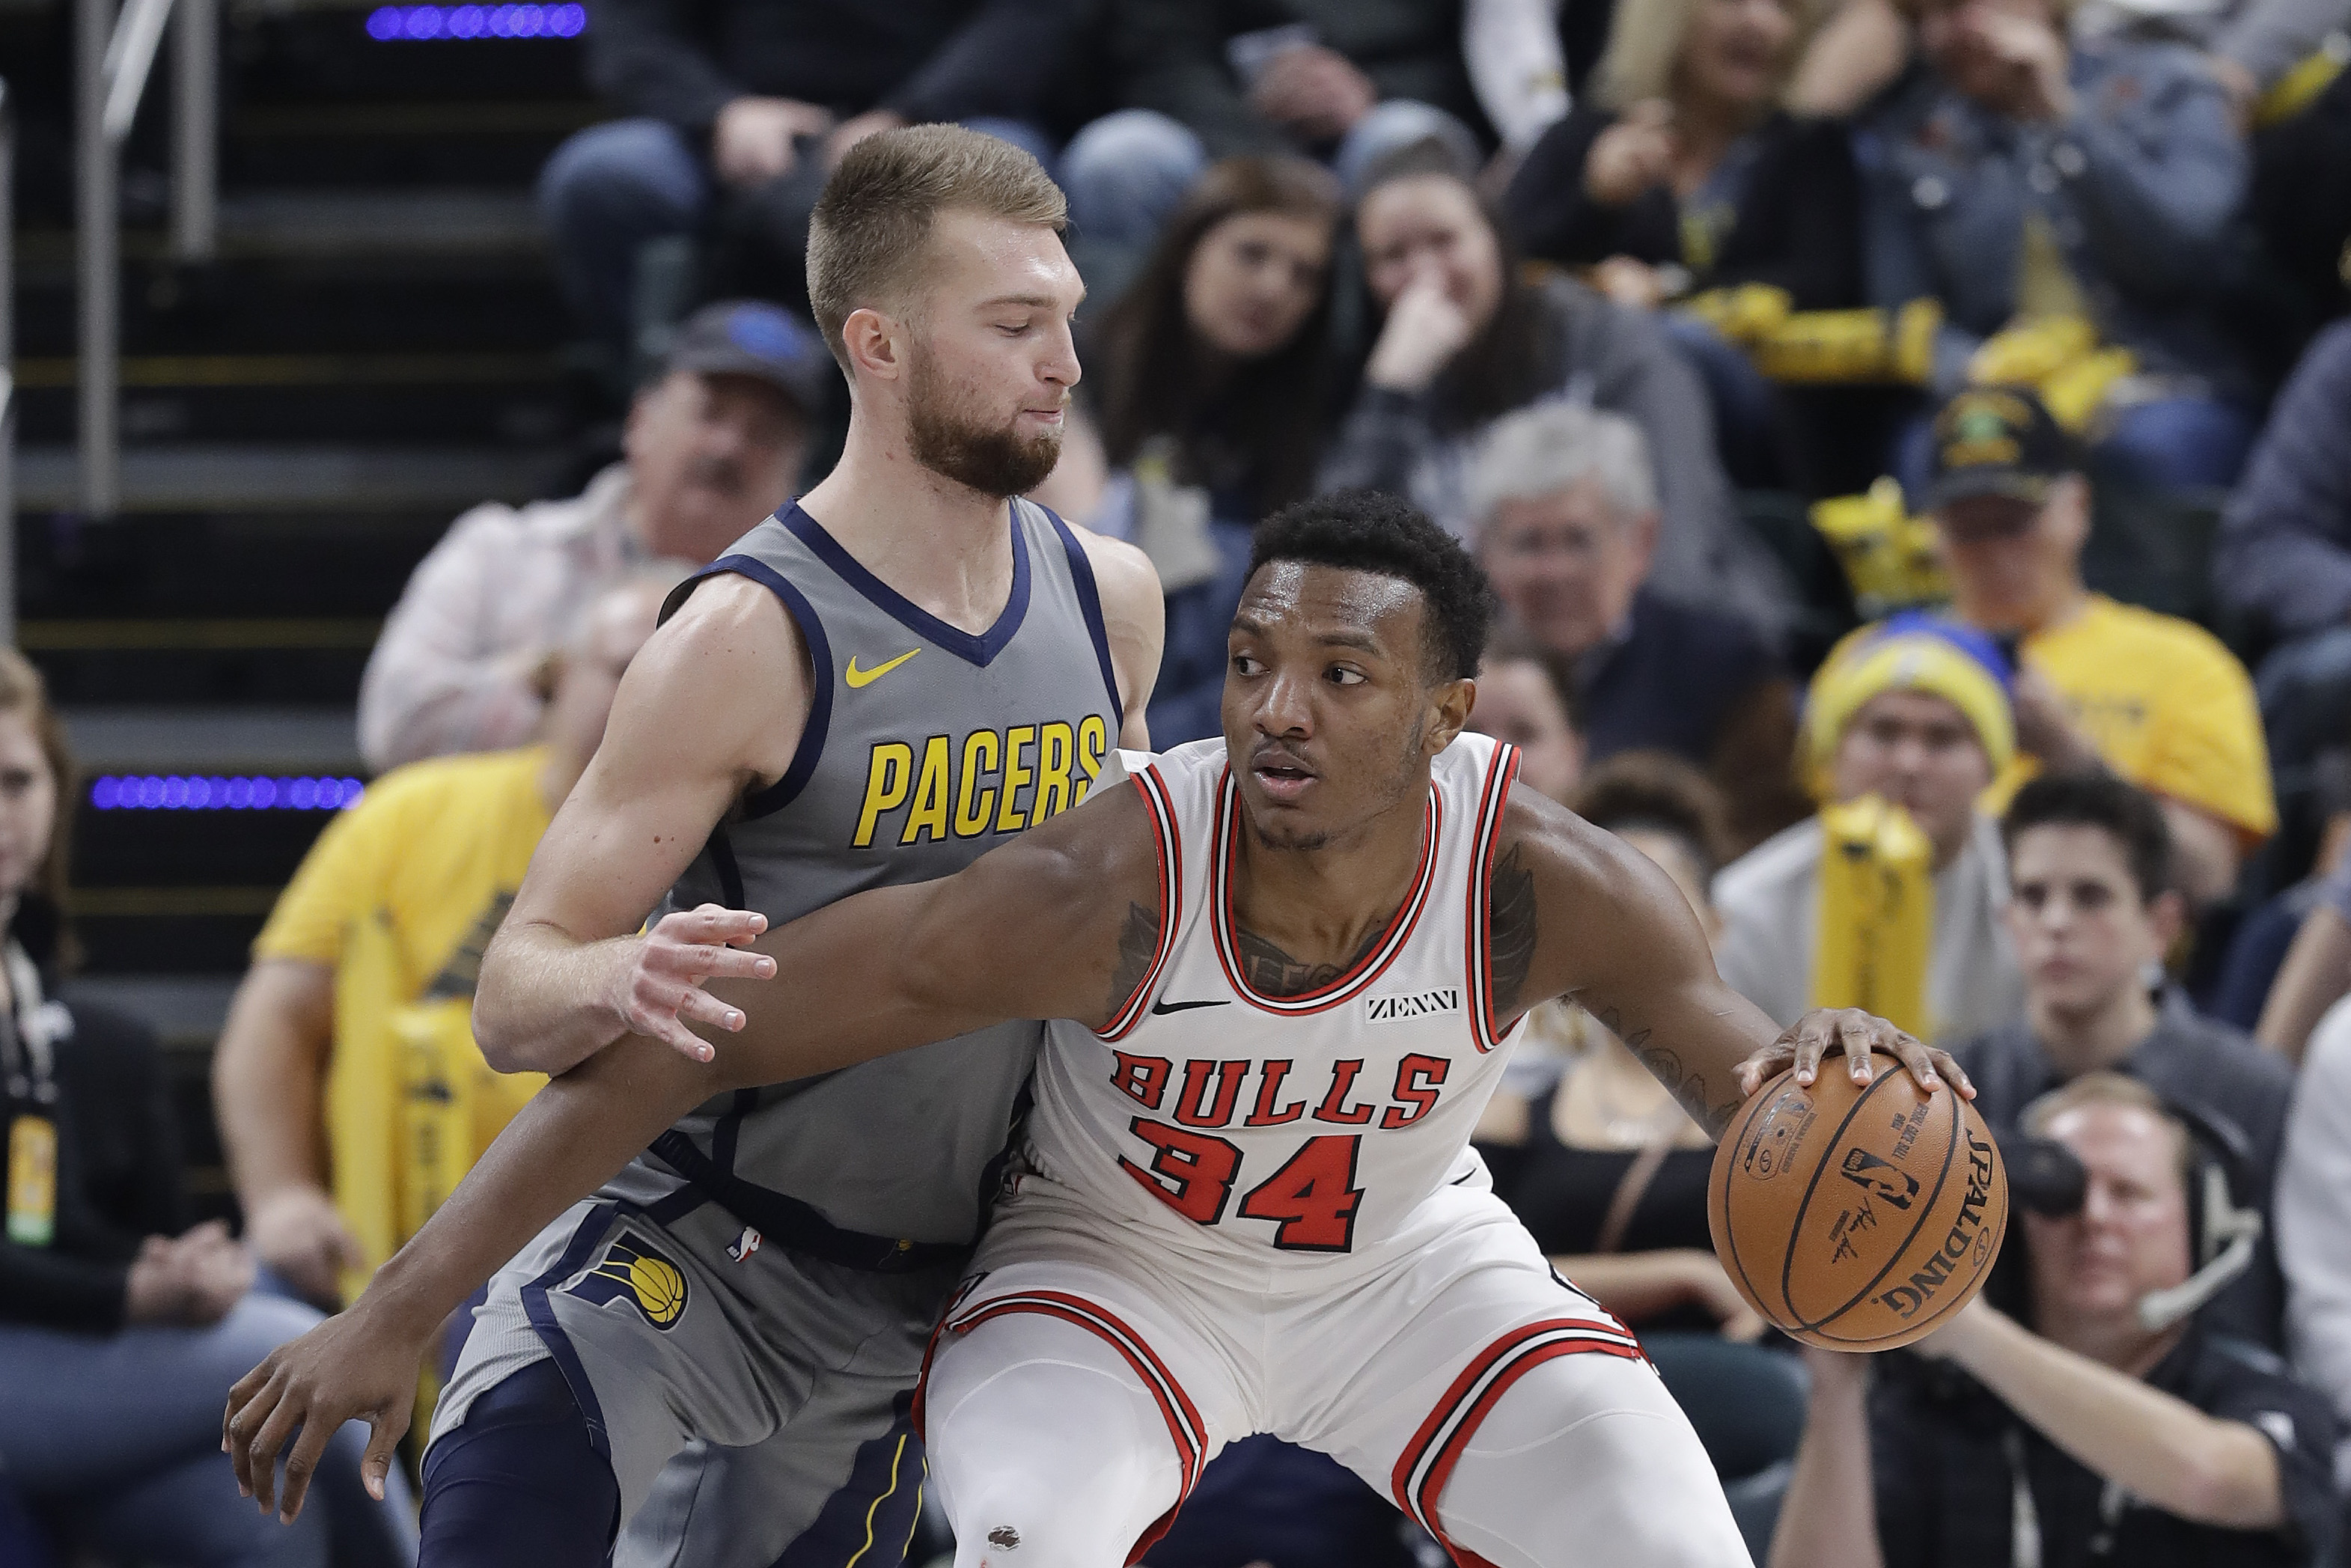 Turner's double-double leads Pacers past Bulls 96-90